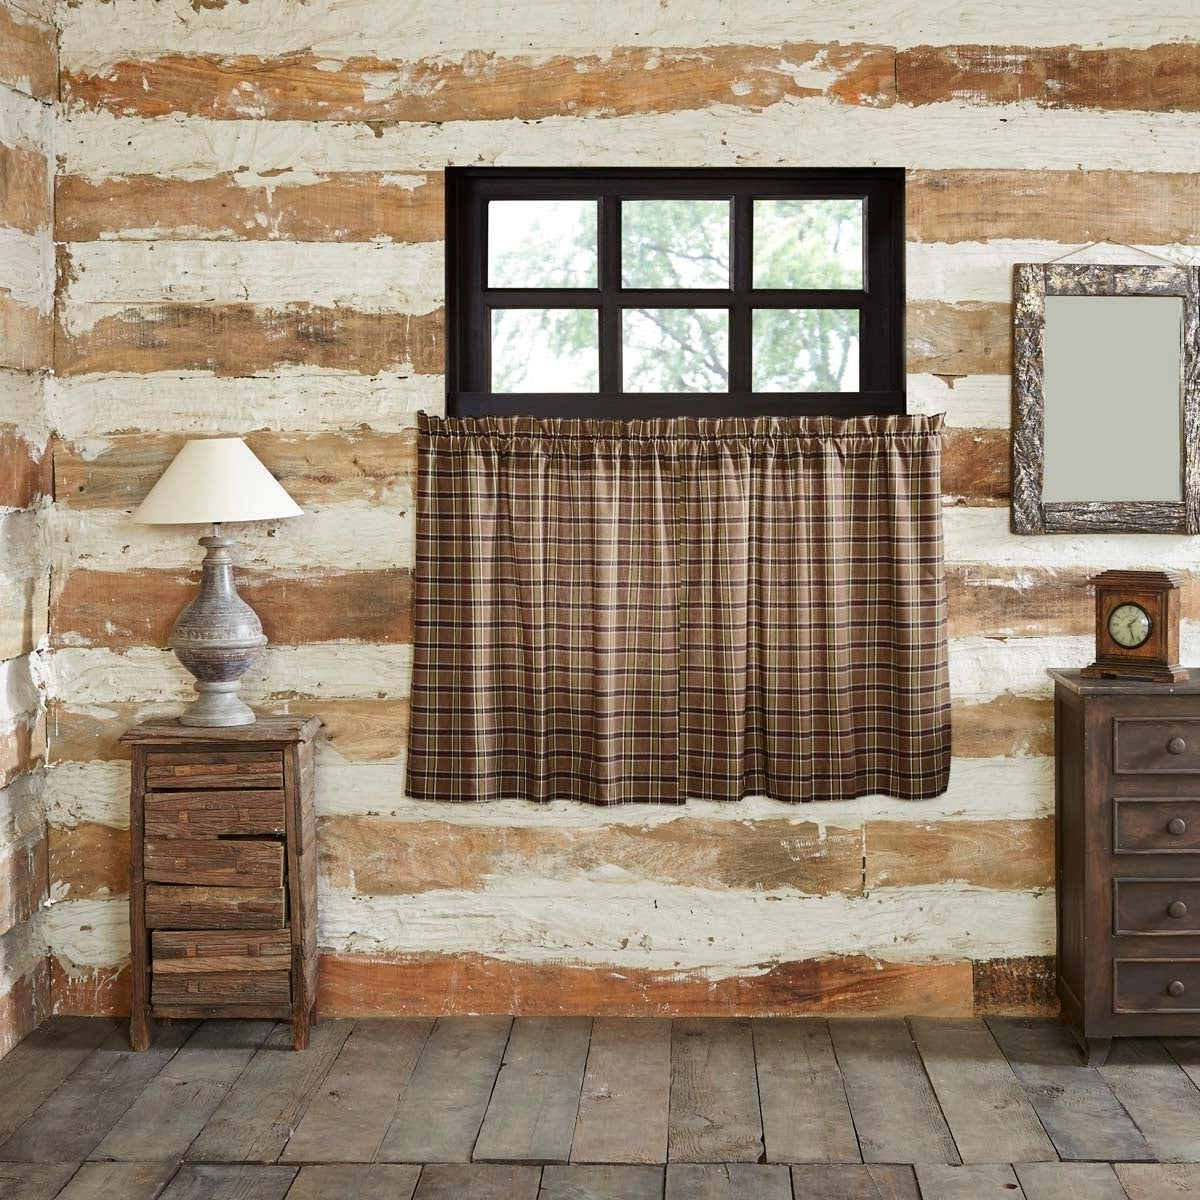 Details About Tan Rustic Kitchen Curtains Vhc Wyatt Tier Pair Rod Pocket Raven, Khaki, Moss Gr Within Most Popular Rustic Kitchen Curtains (View 14 of 20)